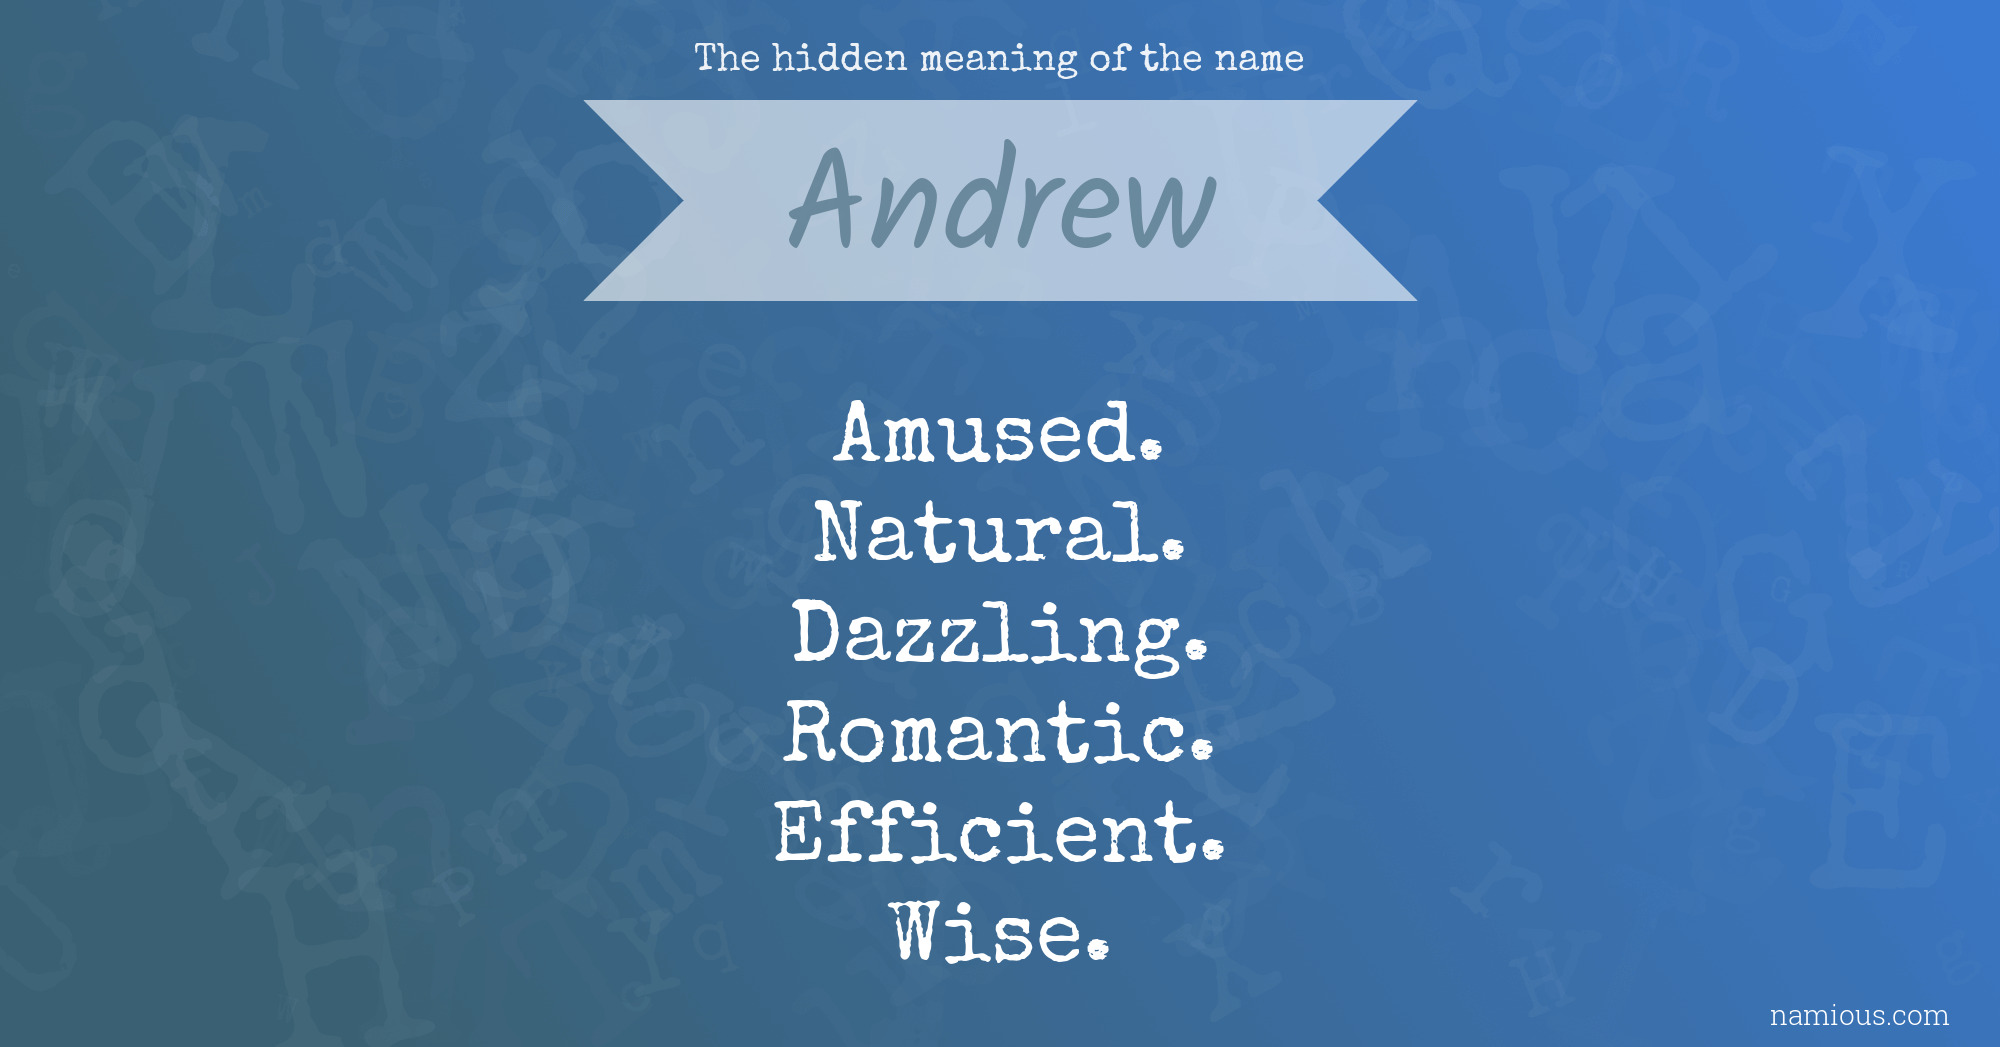 The hidden meaning of the name Andrew